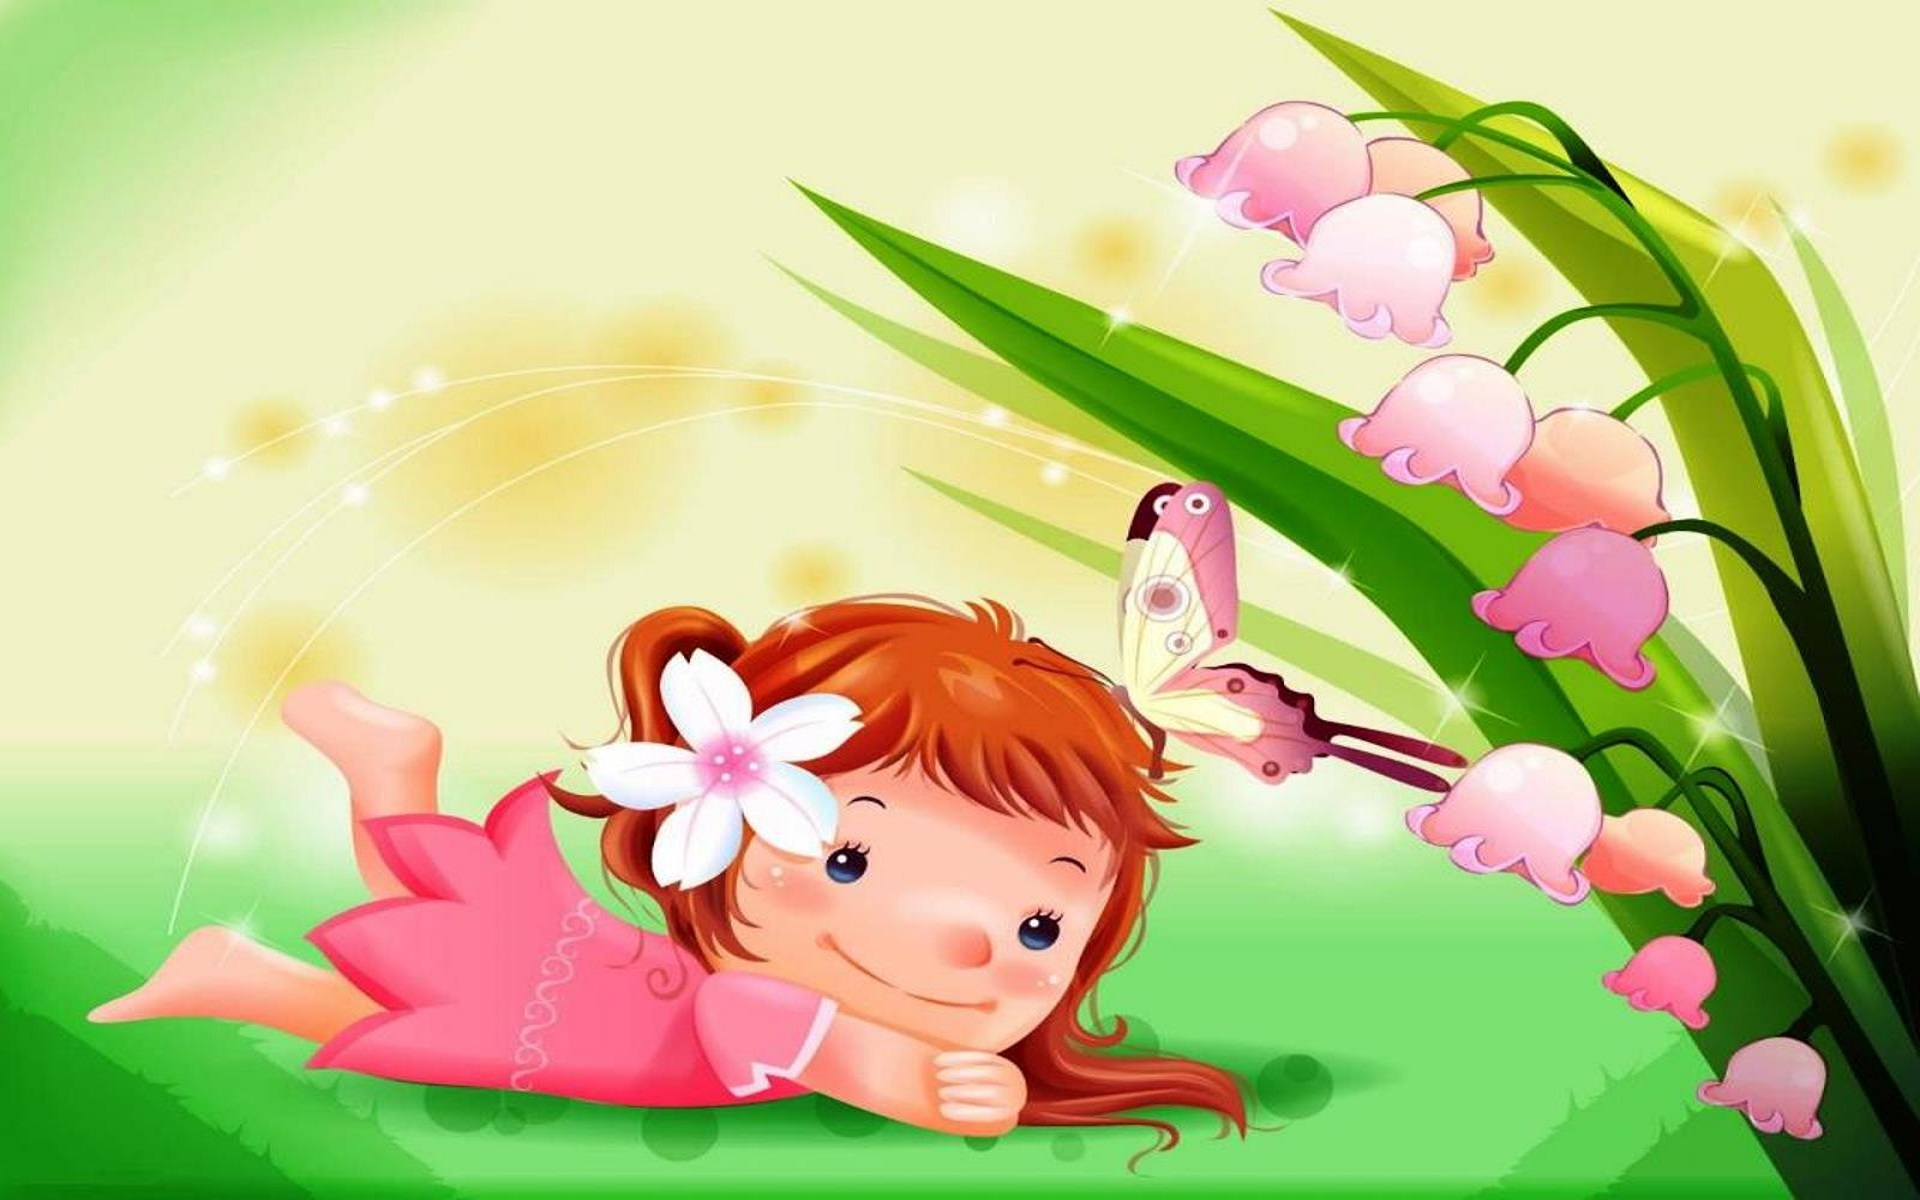 Beautiful hd cute cartoon wallpapers free download hd - Cute cartoon hd images ...